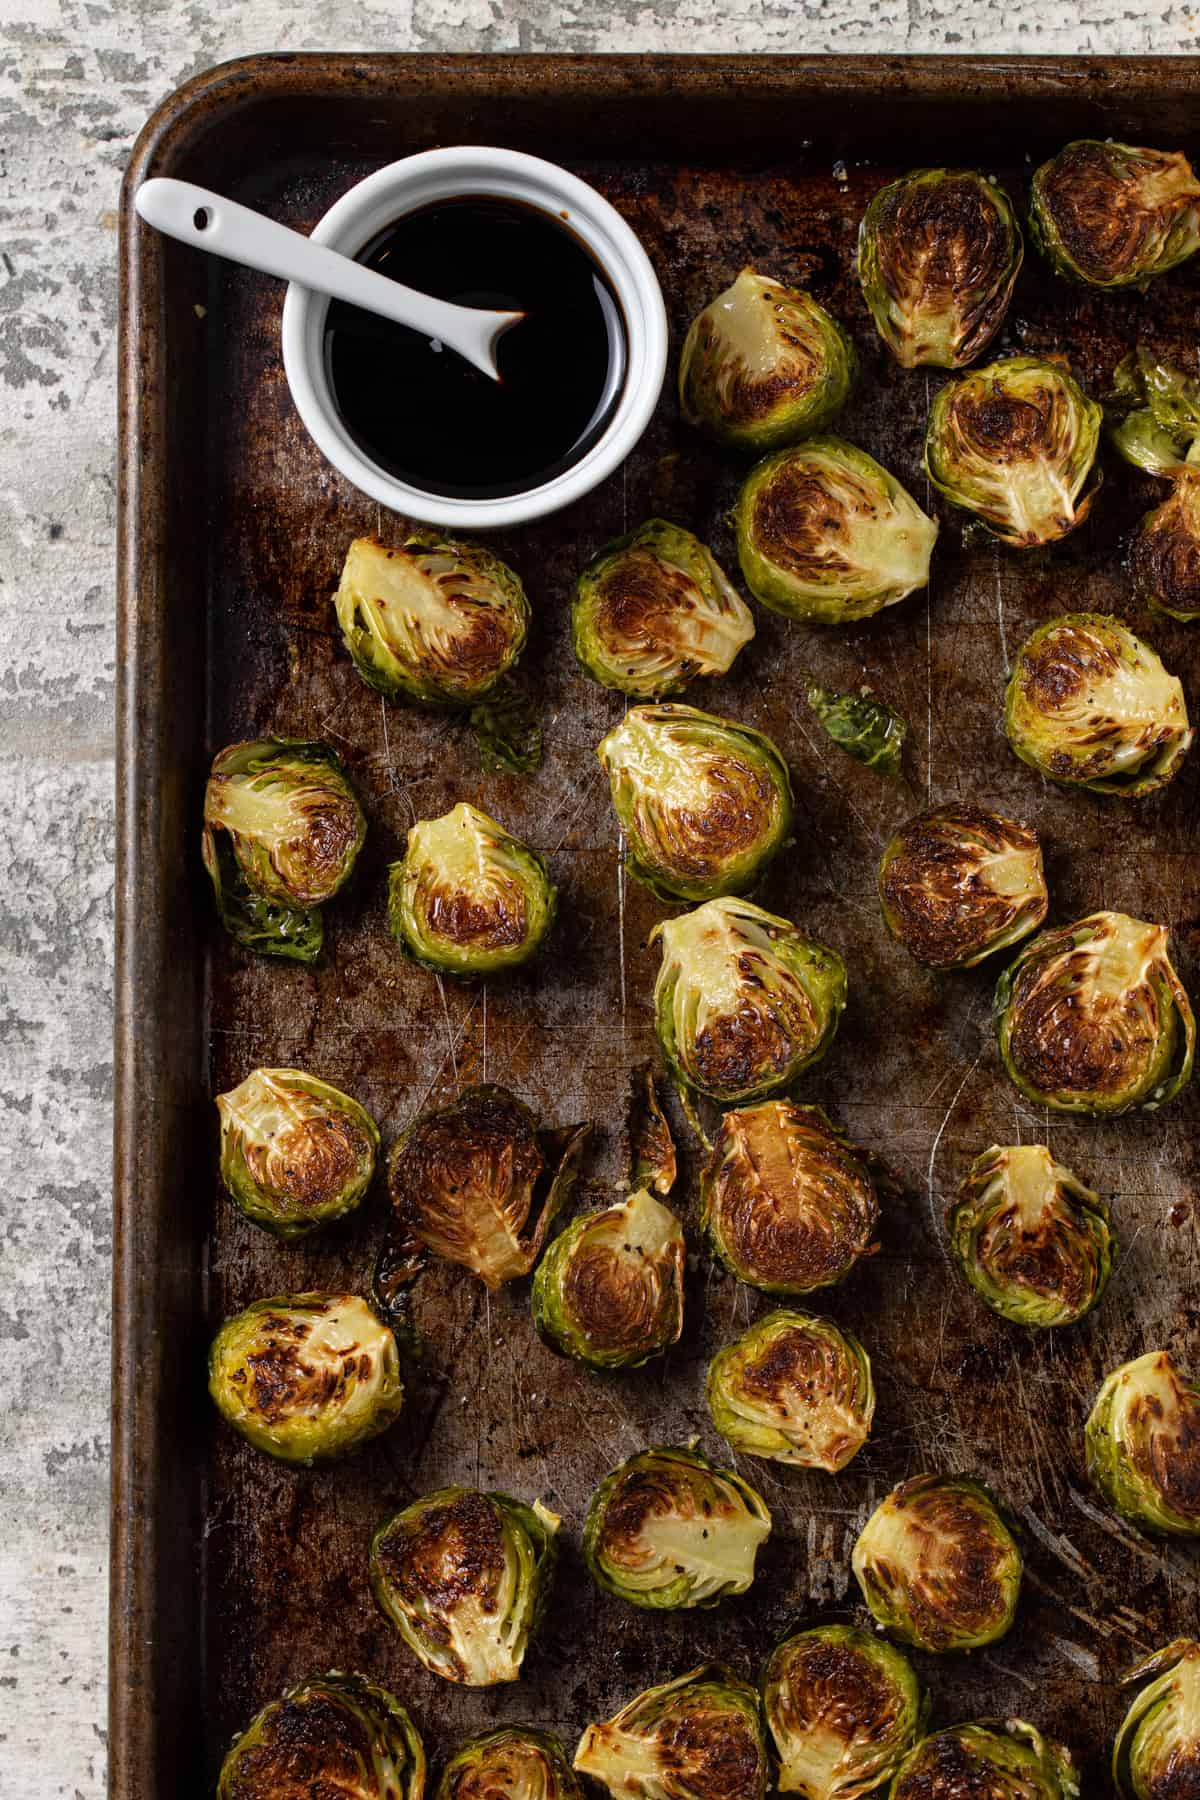 Large sheet pan with roasted brussels sprouts with small white bowl filled with balsamic reduction